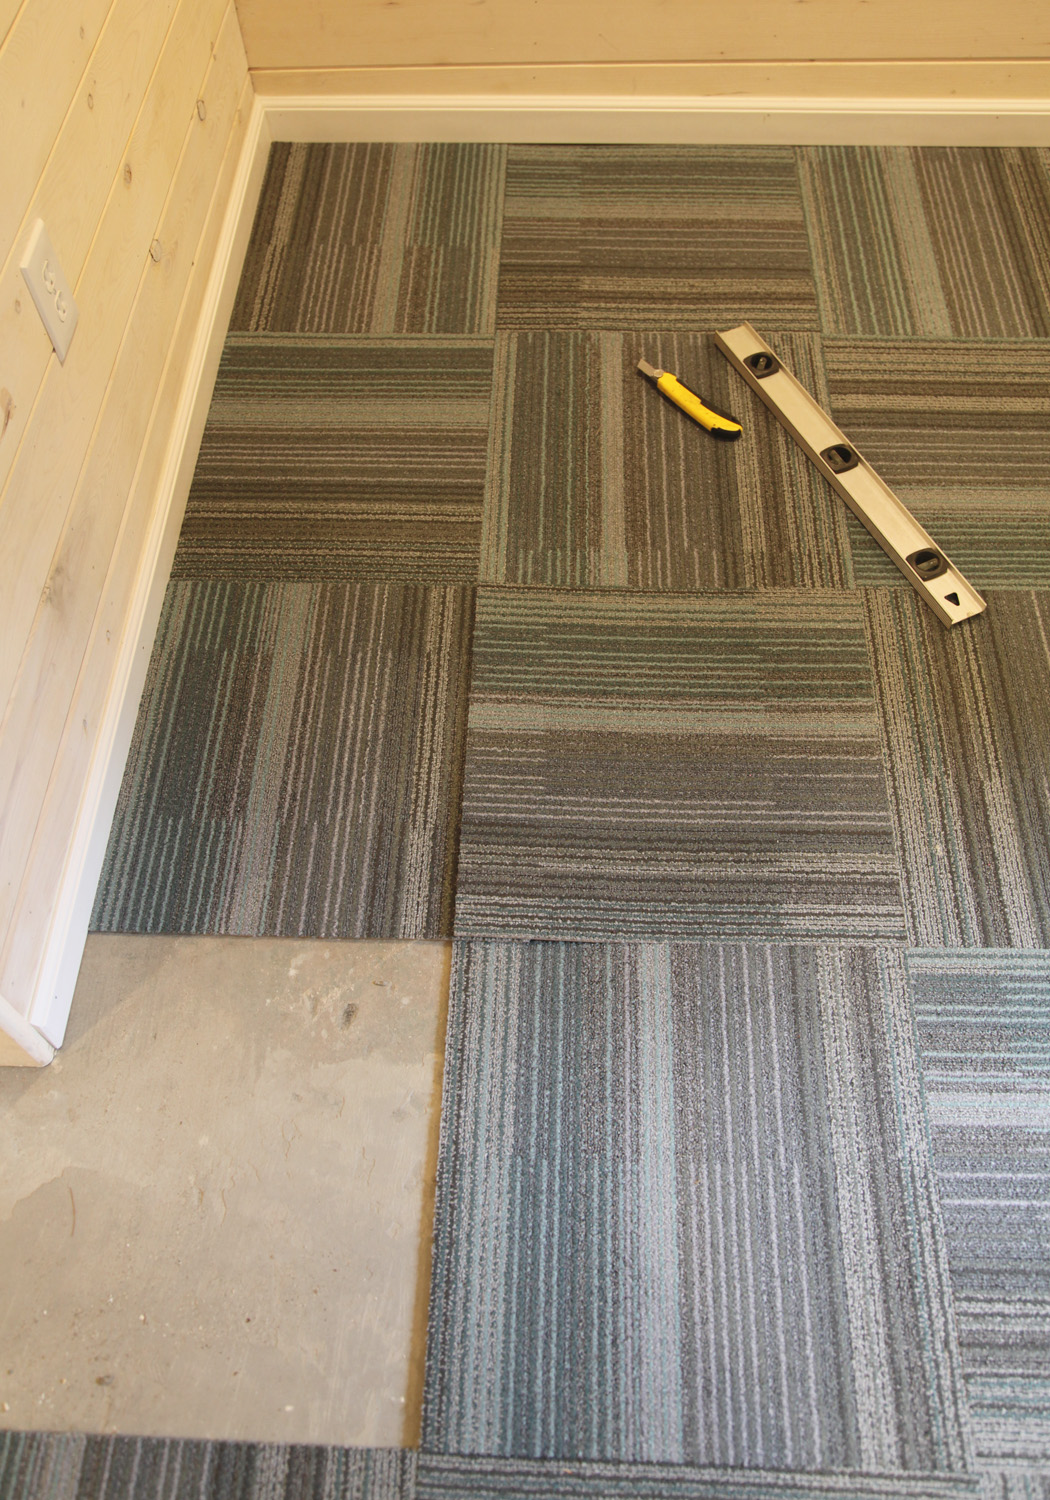 Cutting The Carpet Tile